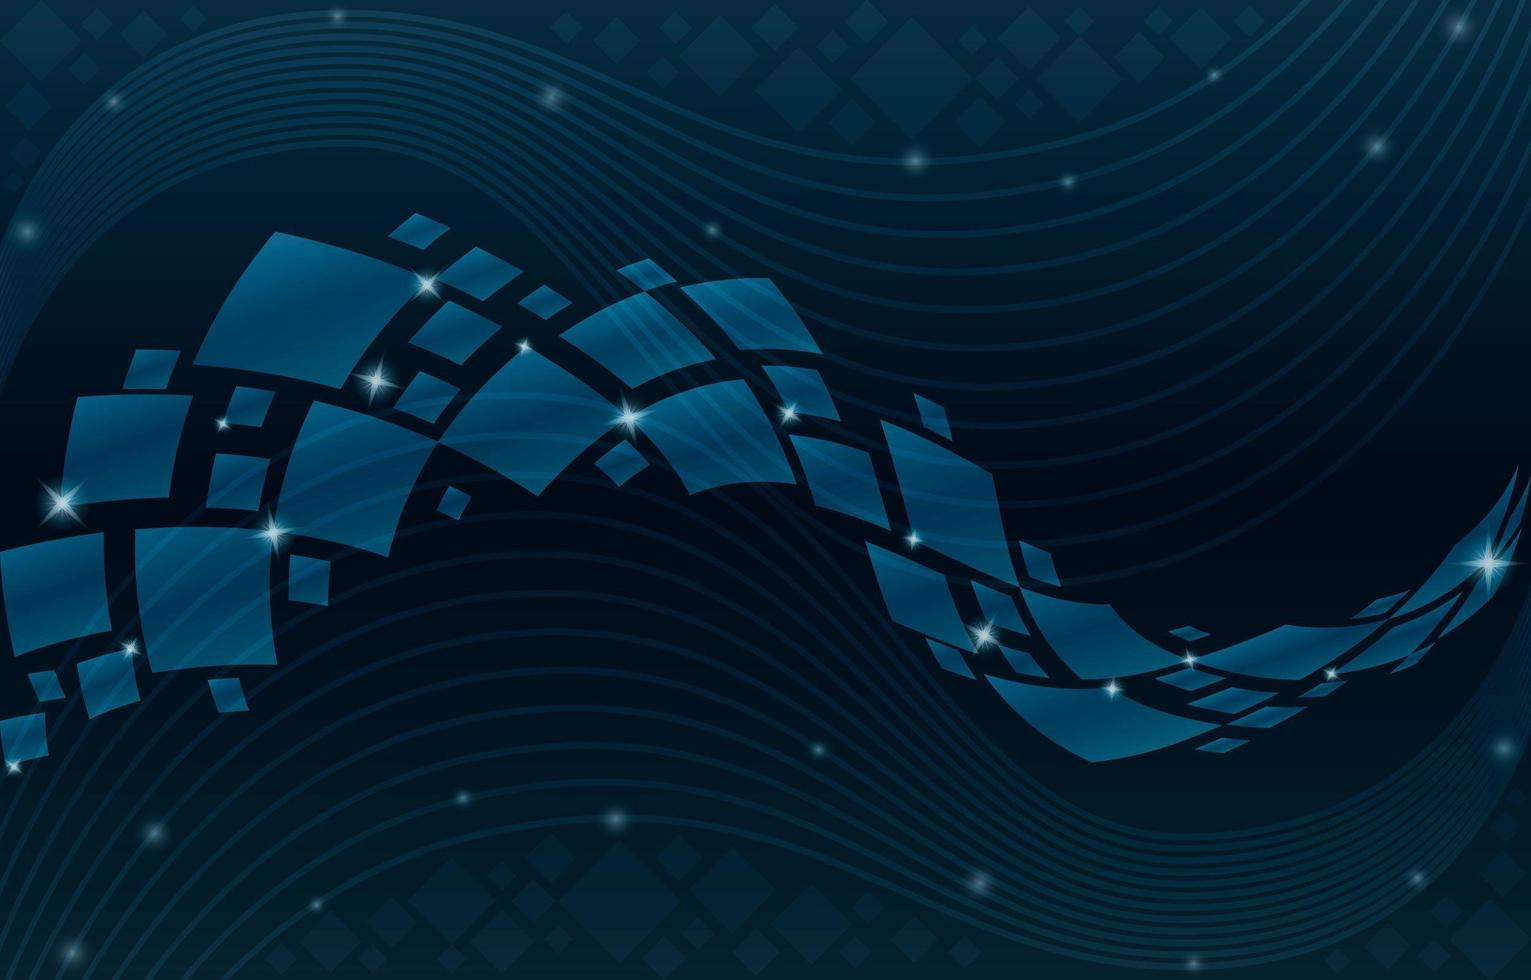 Geometric Wave with Square and Line Composition vector